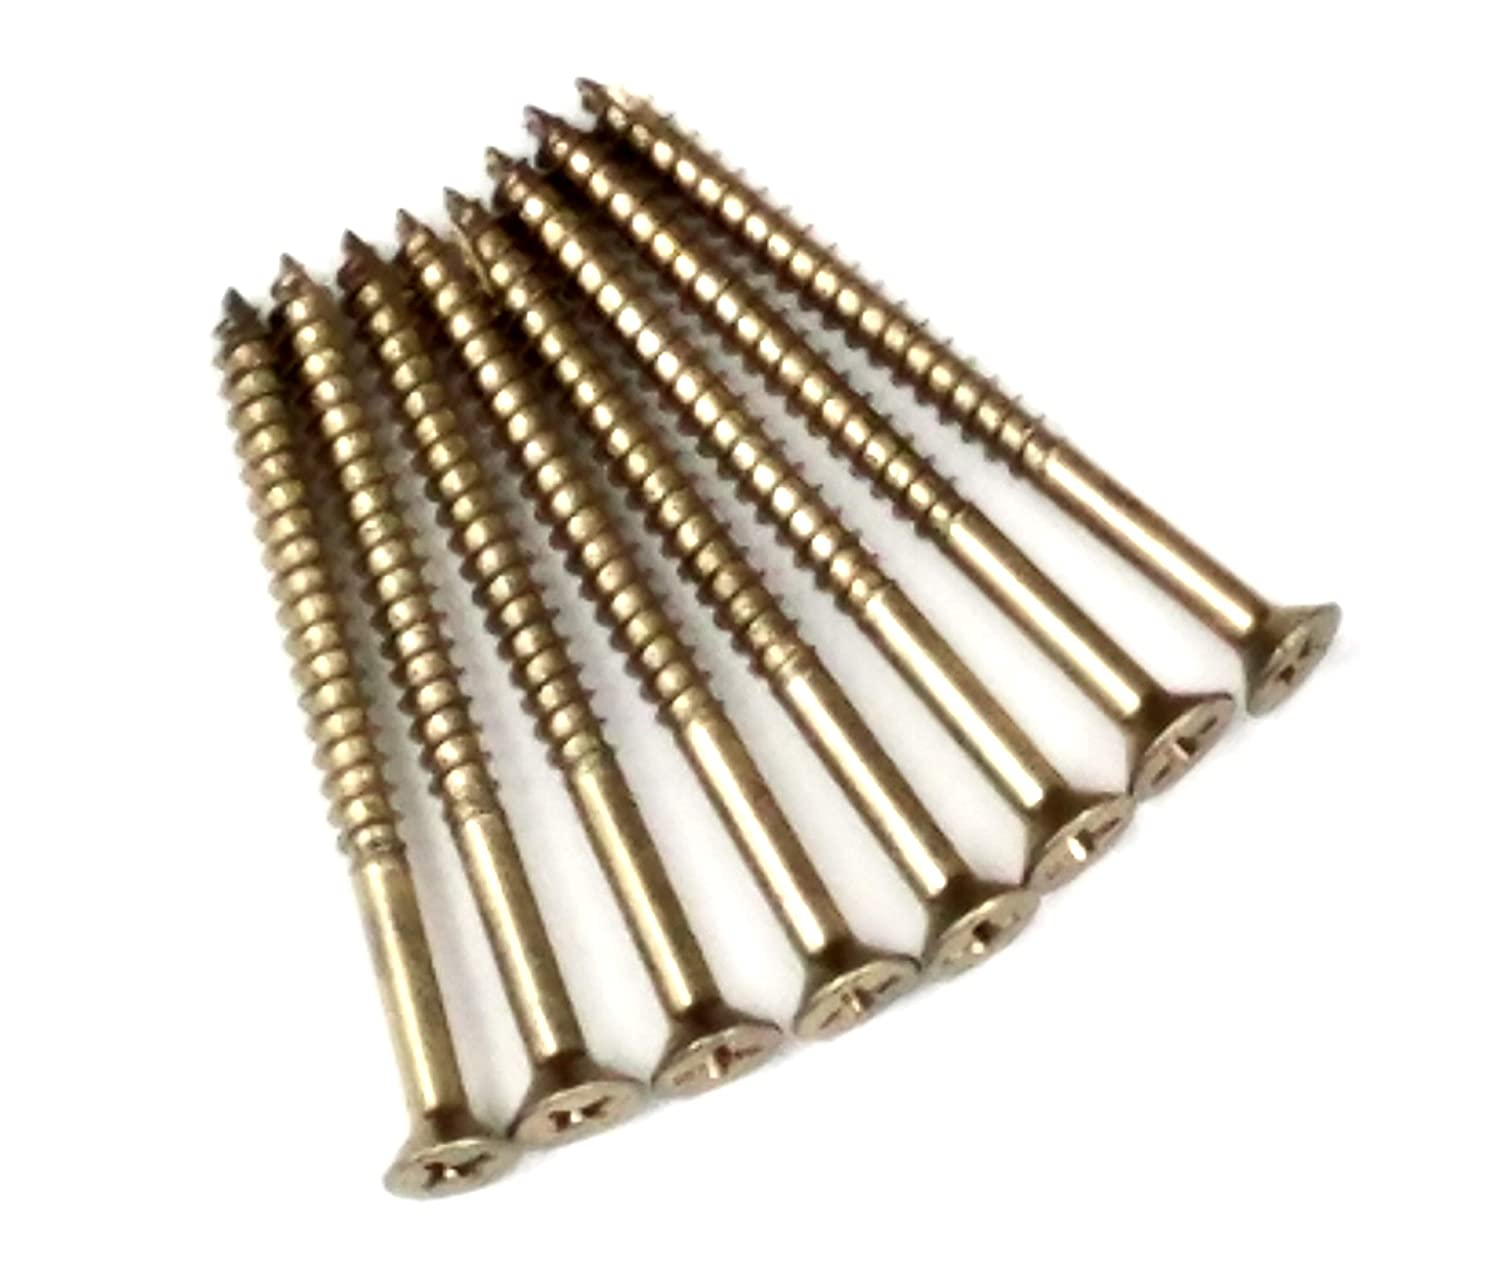 Bright Polished Brass Wood Screws #9 X 3 for Residential Door Hinges 24 Pack